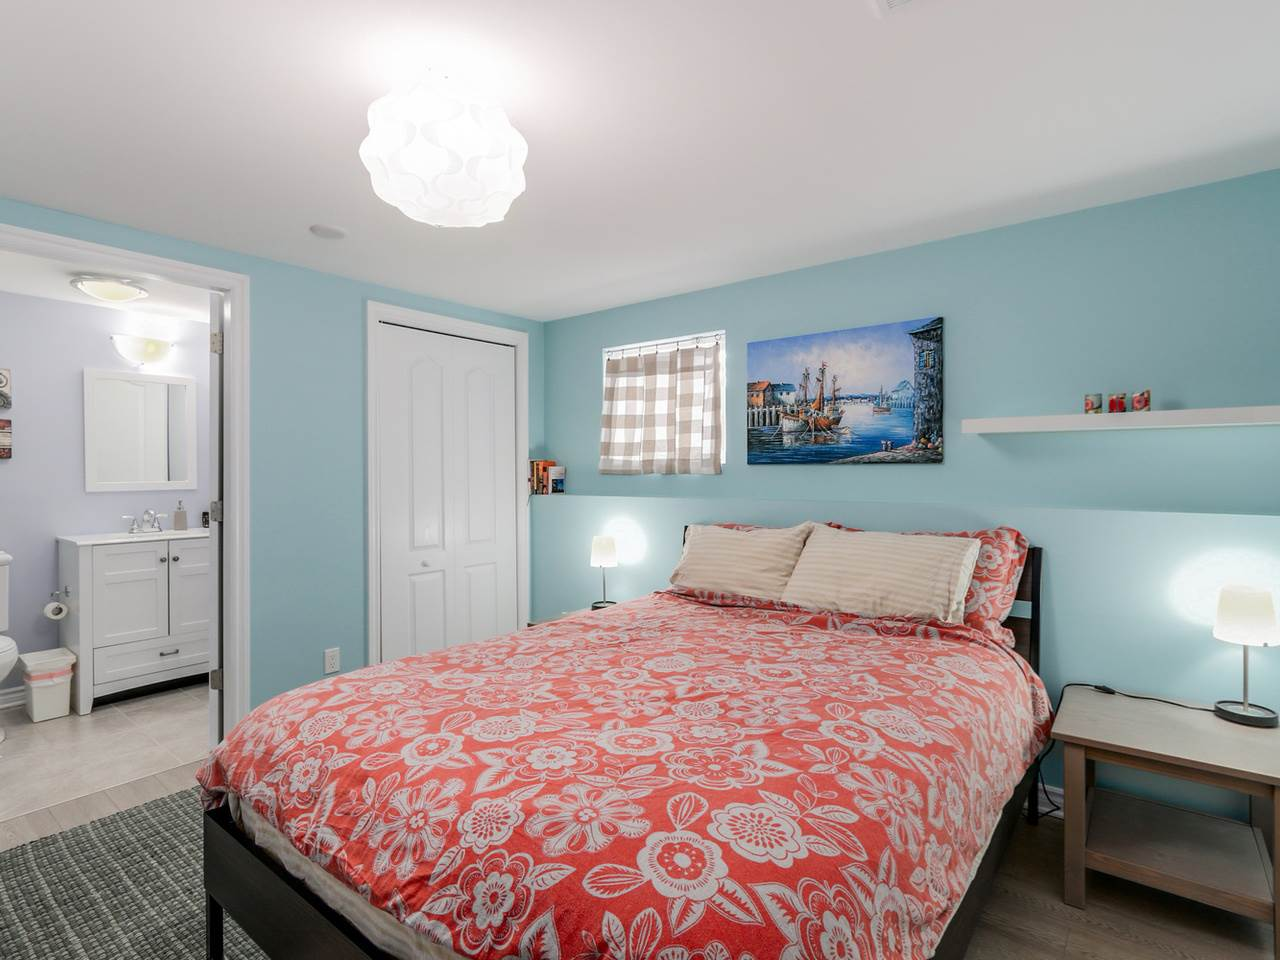 Photo 14: 2542 E 28TH AVENUE in Vancouver: Collingwood VE House for sale (Vancouver East)  : MLS® # R2052154